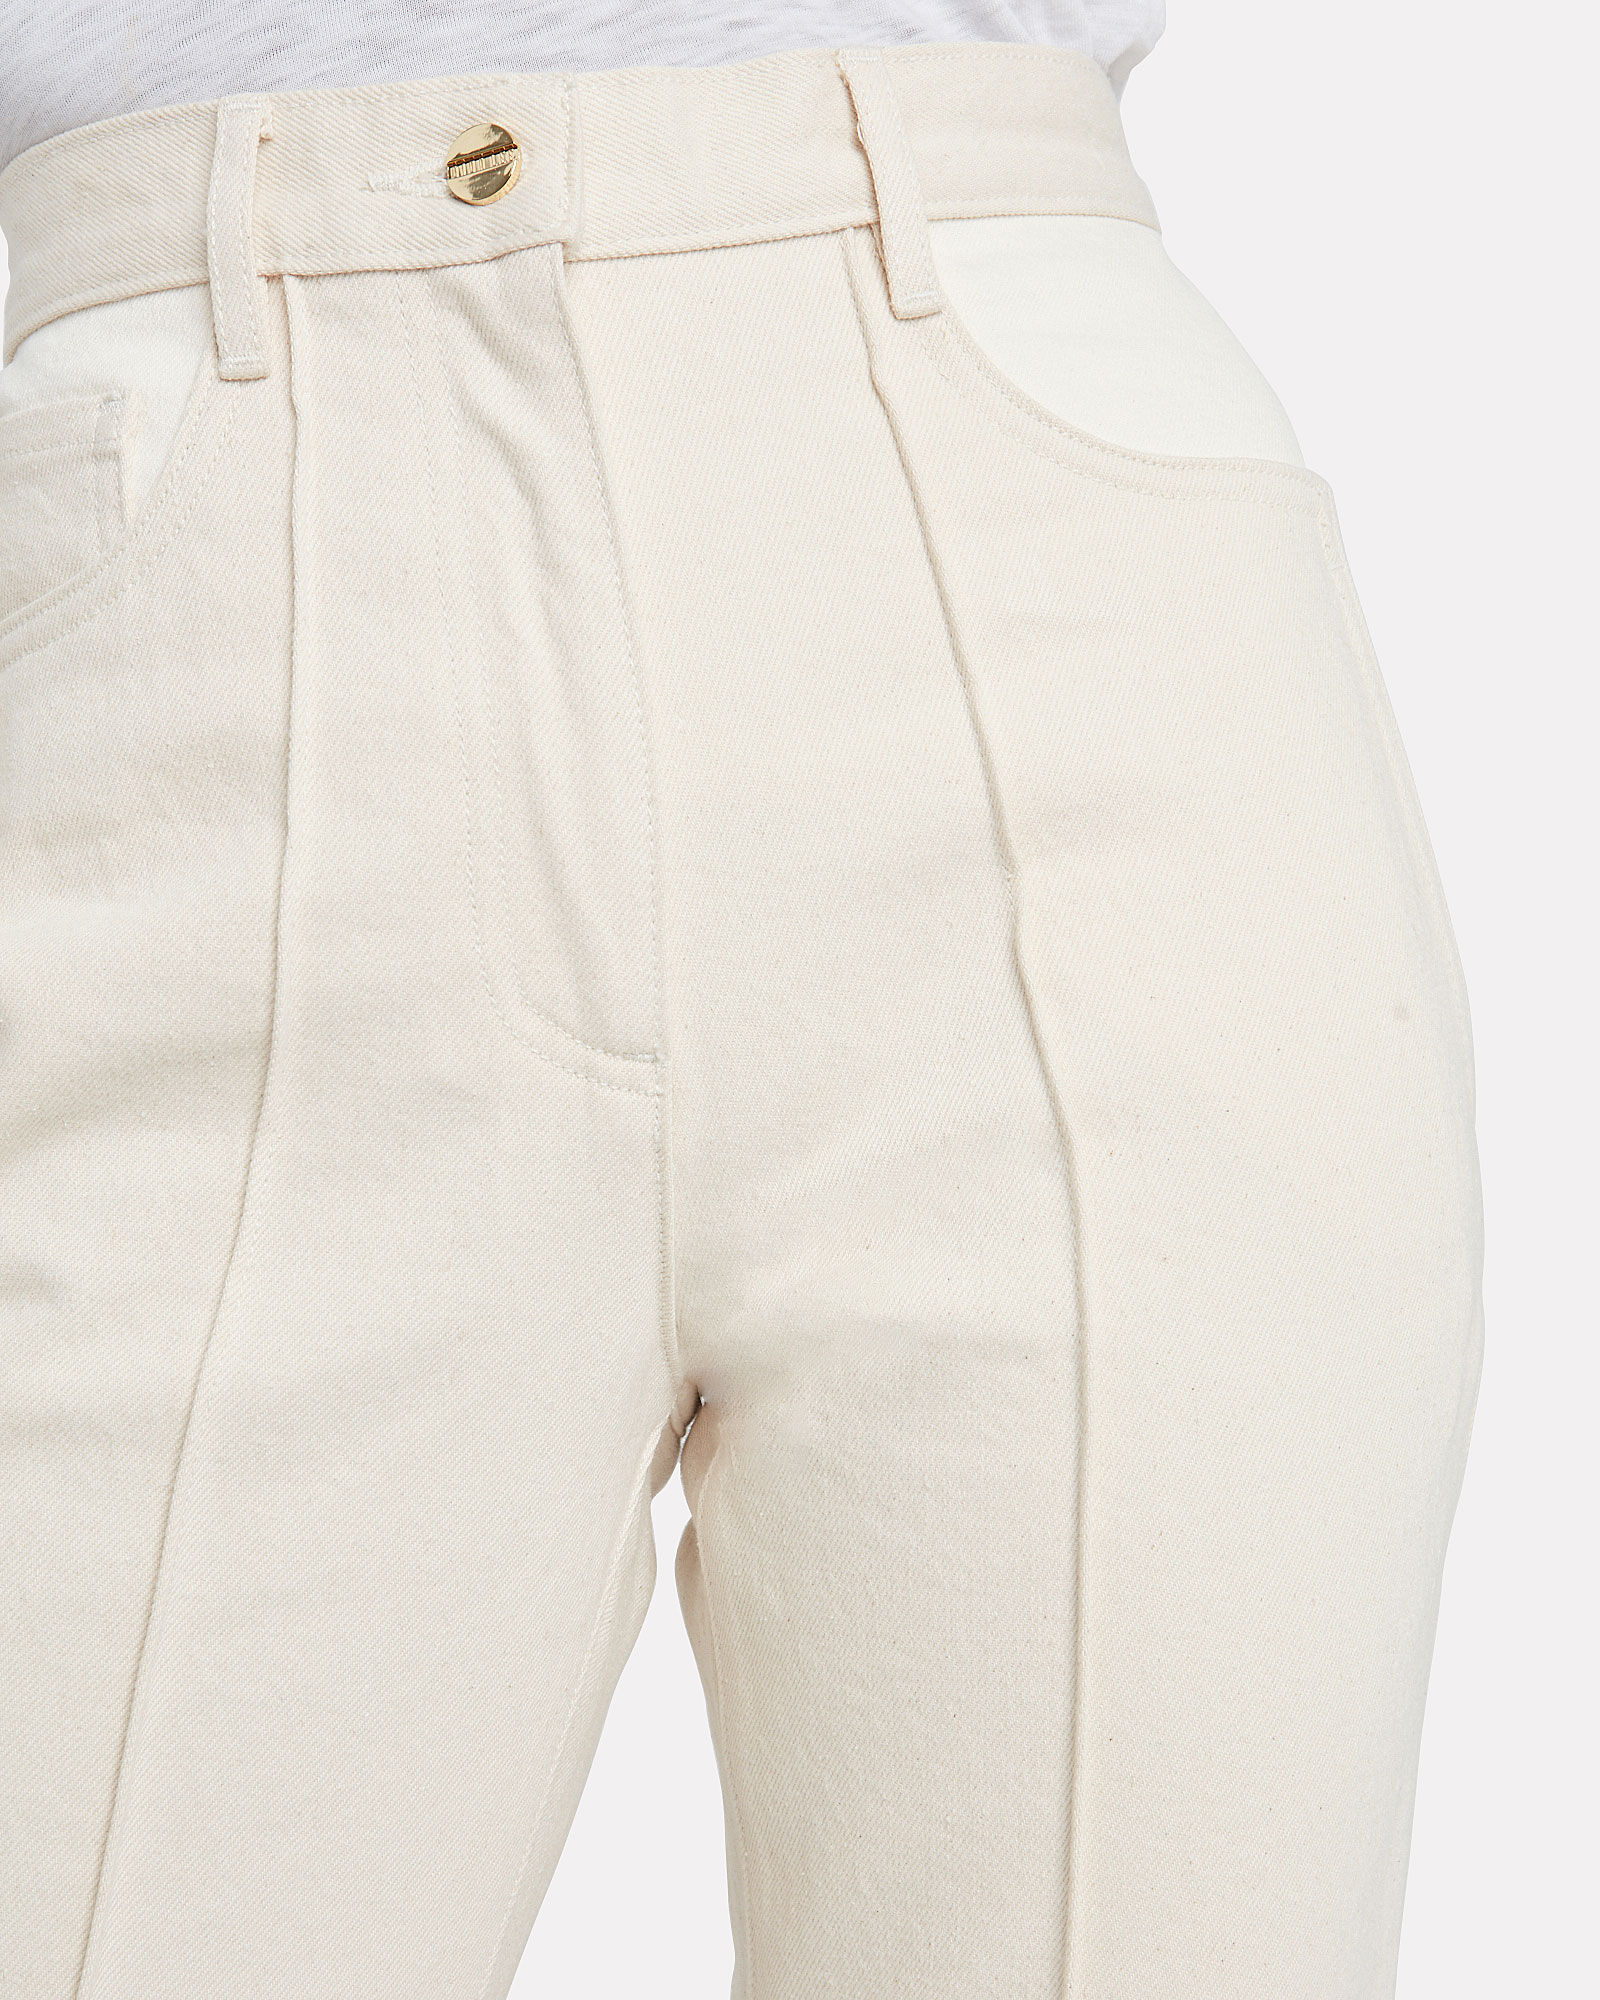 Signature High-Waist Ankle Jeans, IVORY, hi-res